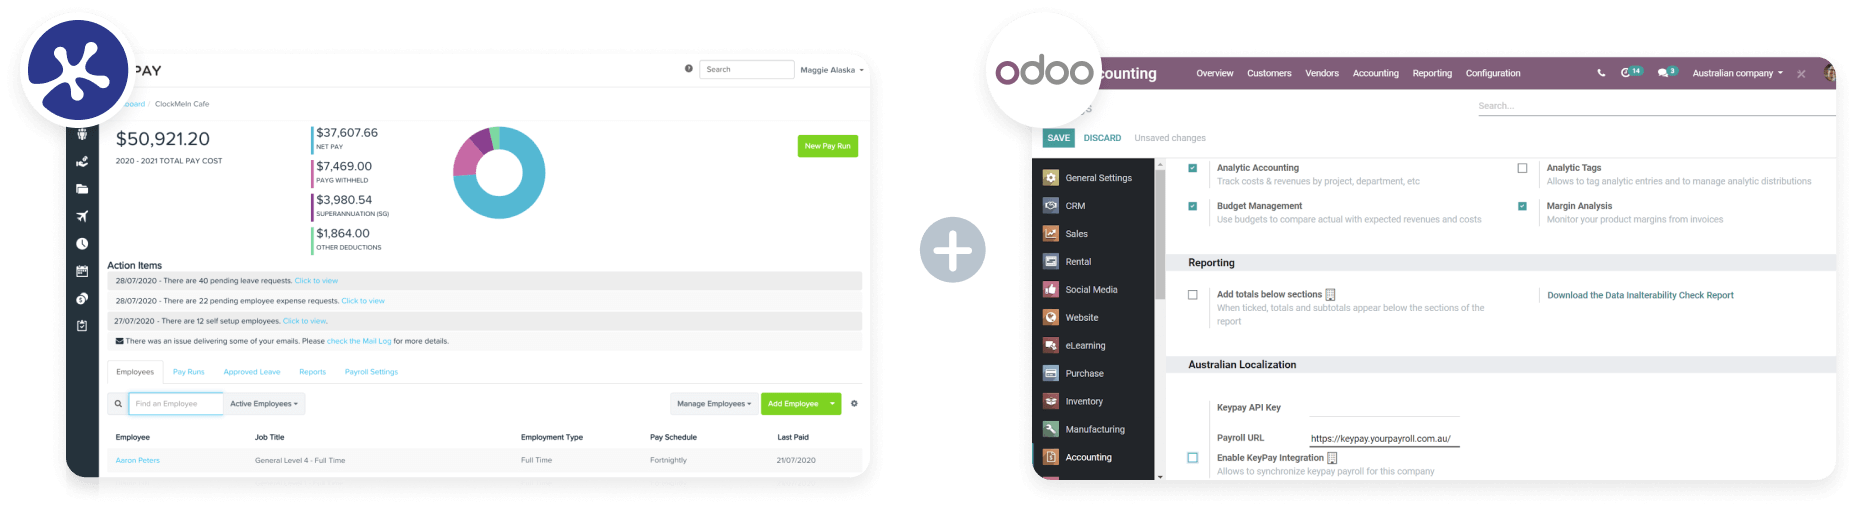 KeyPay and Odoo dashboards